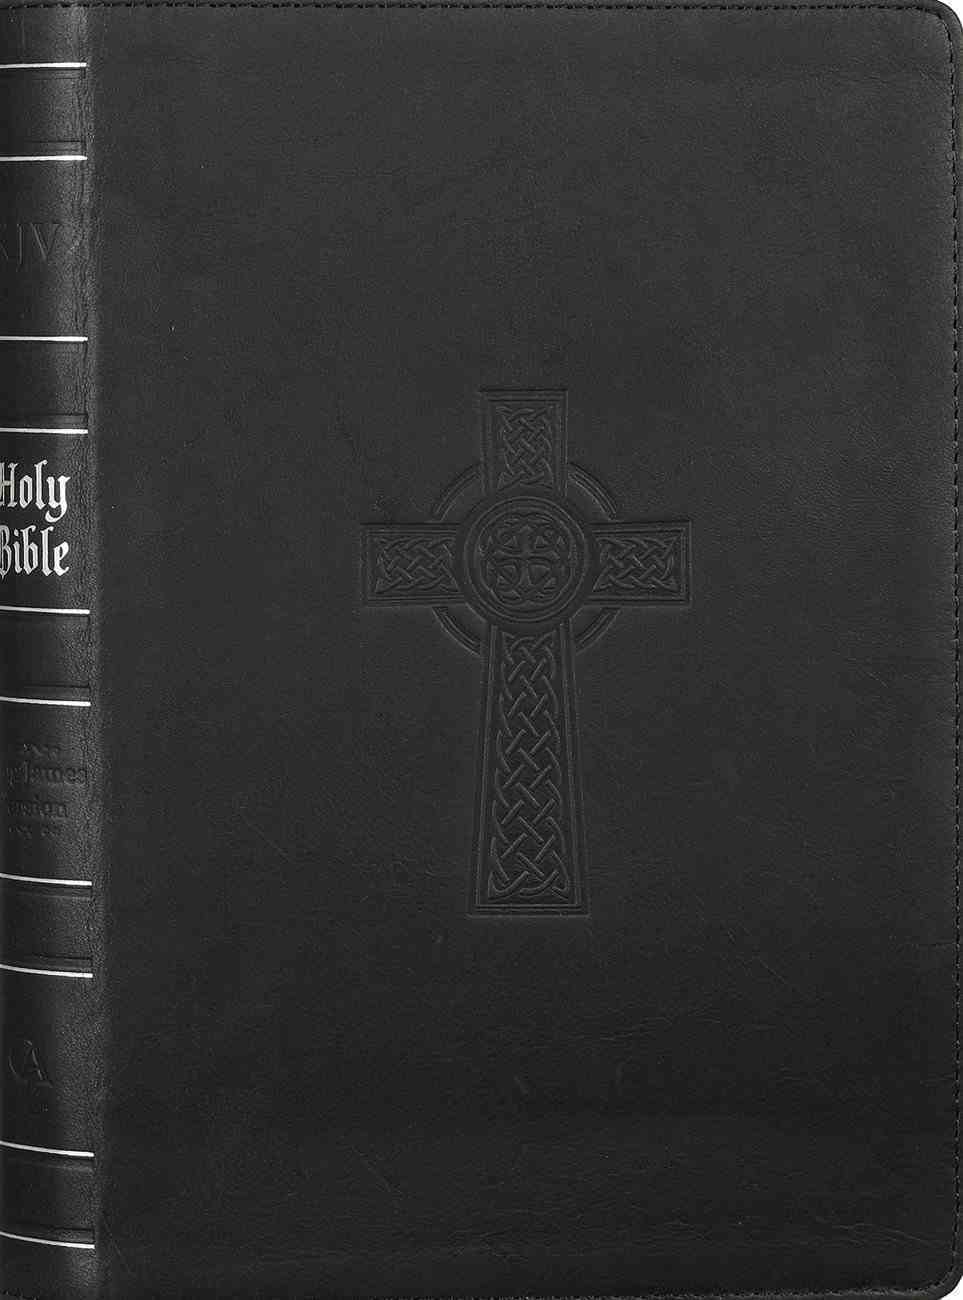 KJV Thinline Large Print Bible Indexed Black (Red Letter Edition) Genuine Leather